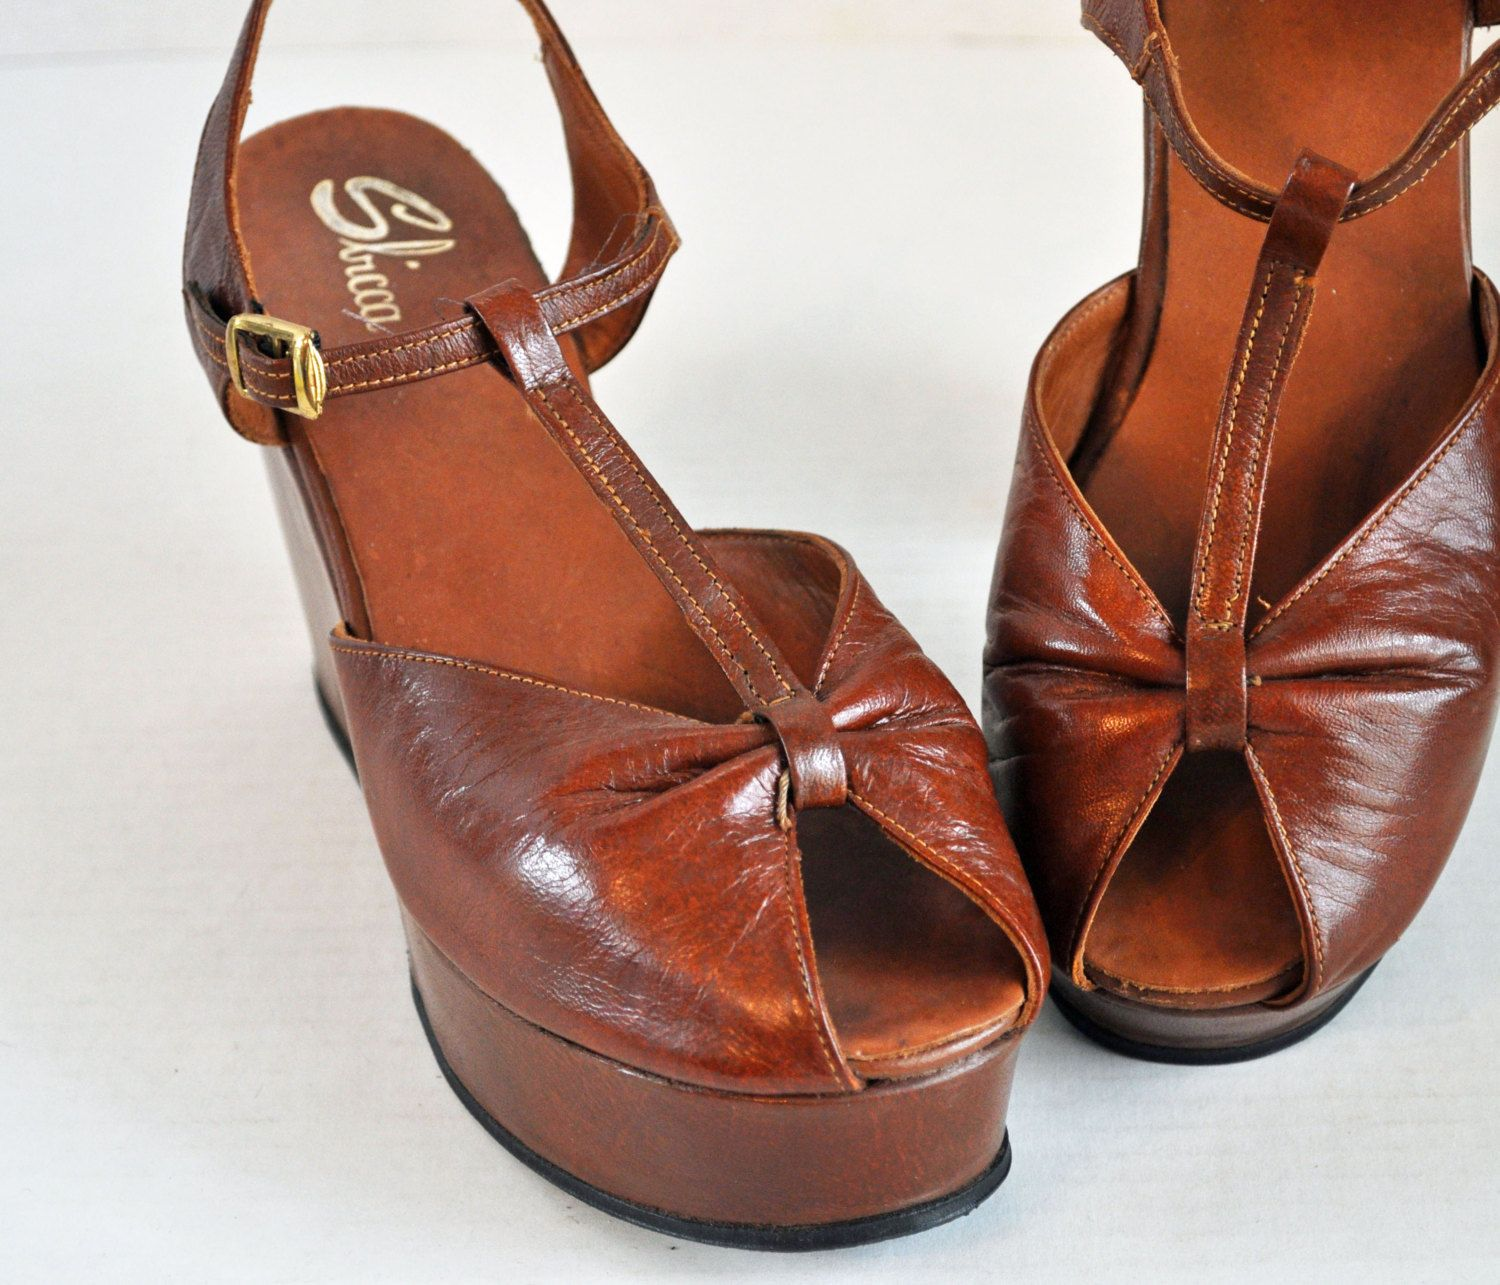 vintage 70s PLATFORM Shoes Sandals / Sbicca Shoes / Strappy PEEPTOE  Platform Sandals / Womens Leather